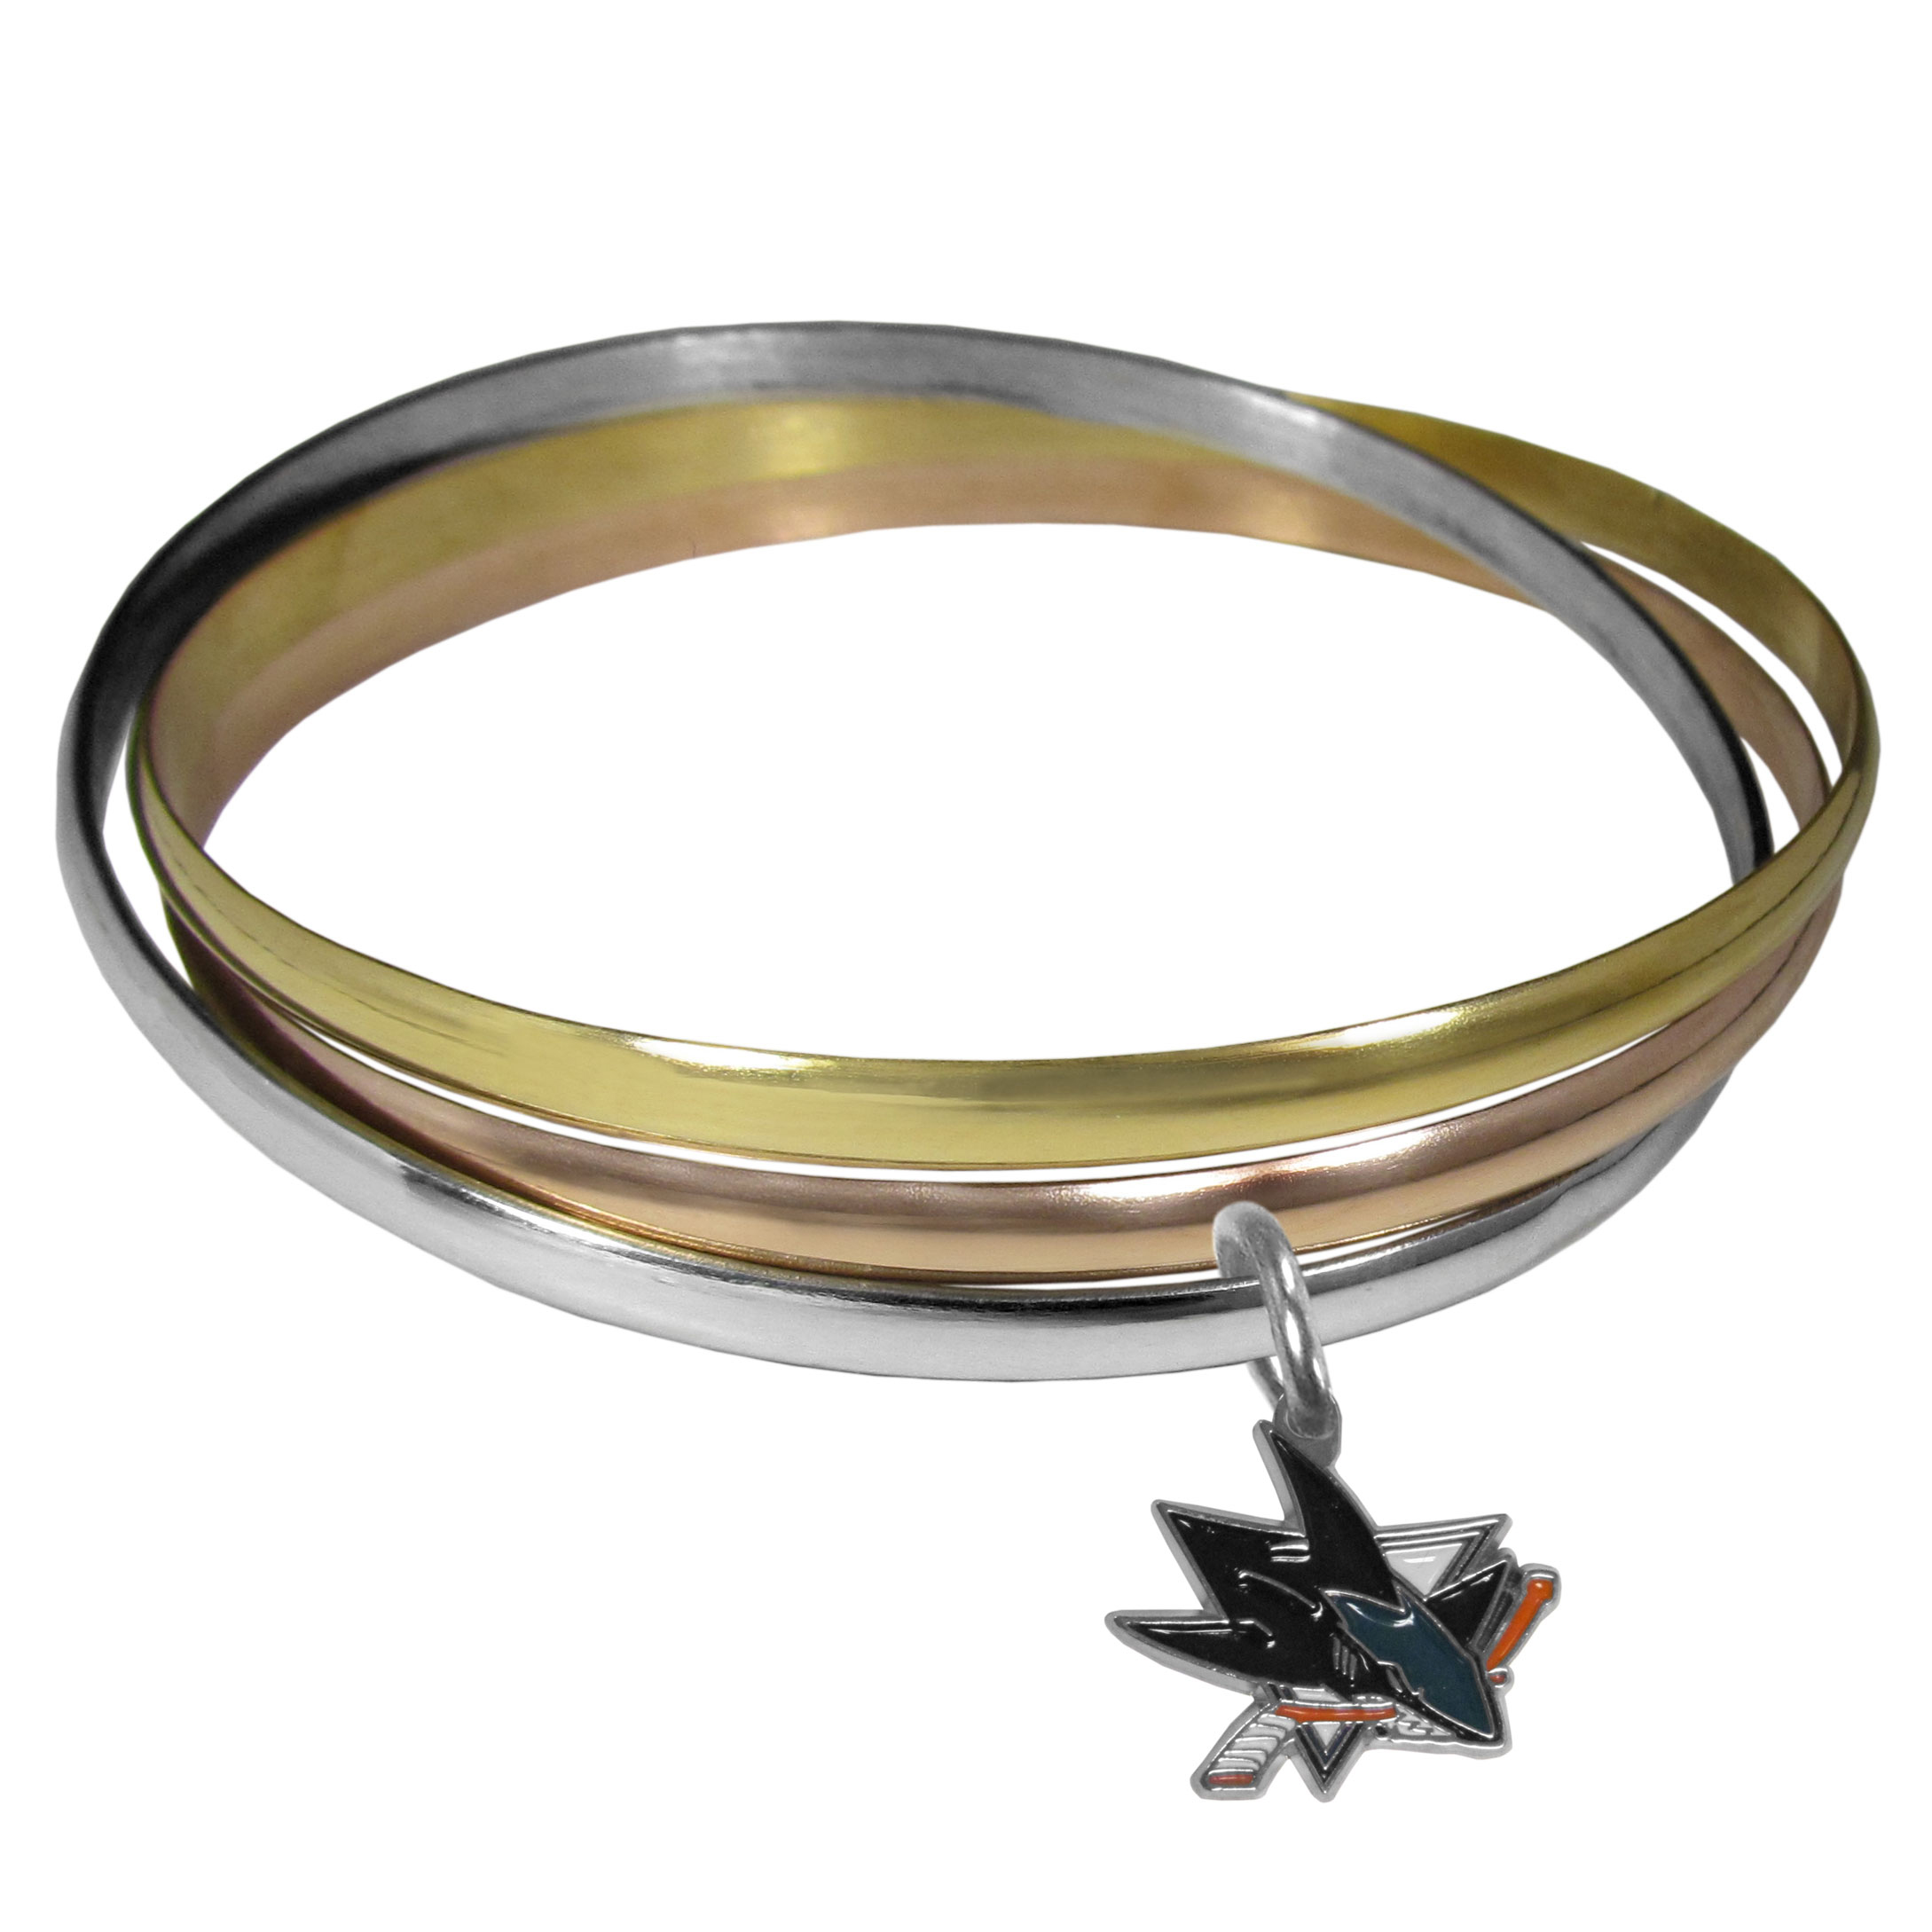 San Jose Sharks® Tri-color Bangle Bracelet - These beautiful bangles come in a interlocking style and feature a fully cast San Jose Sharks® charm with enameled team colors. The bracelet has a silver toned bangle, gold tone bangle and brass toned bangle.